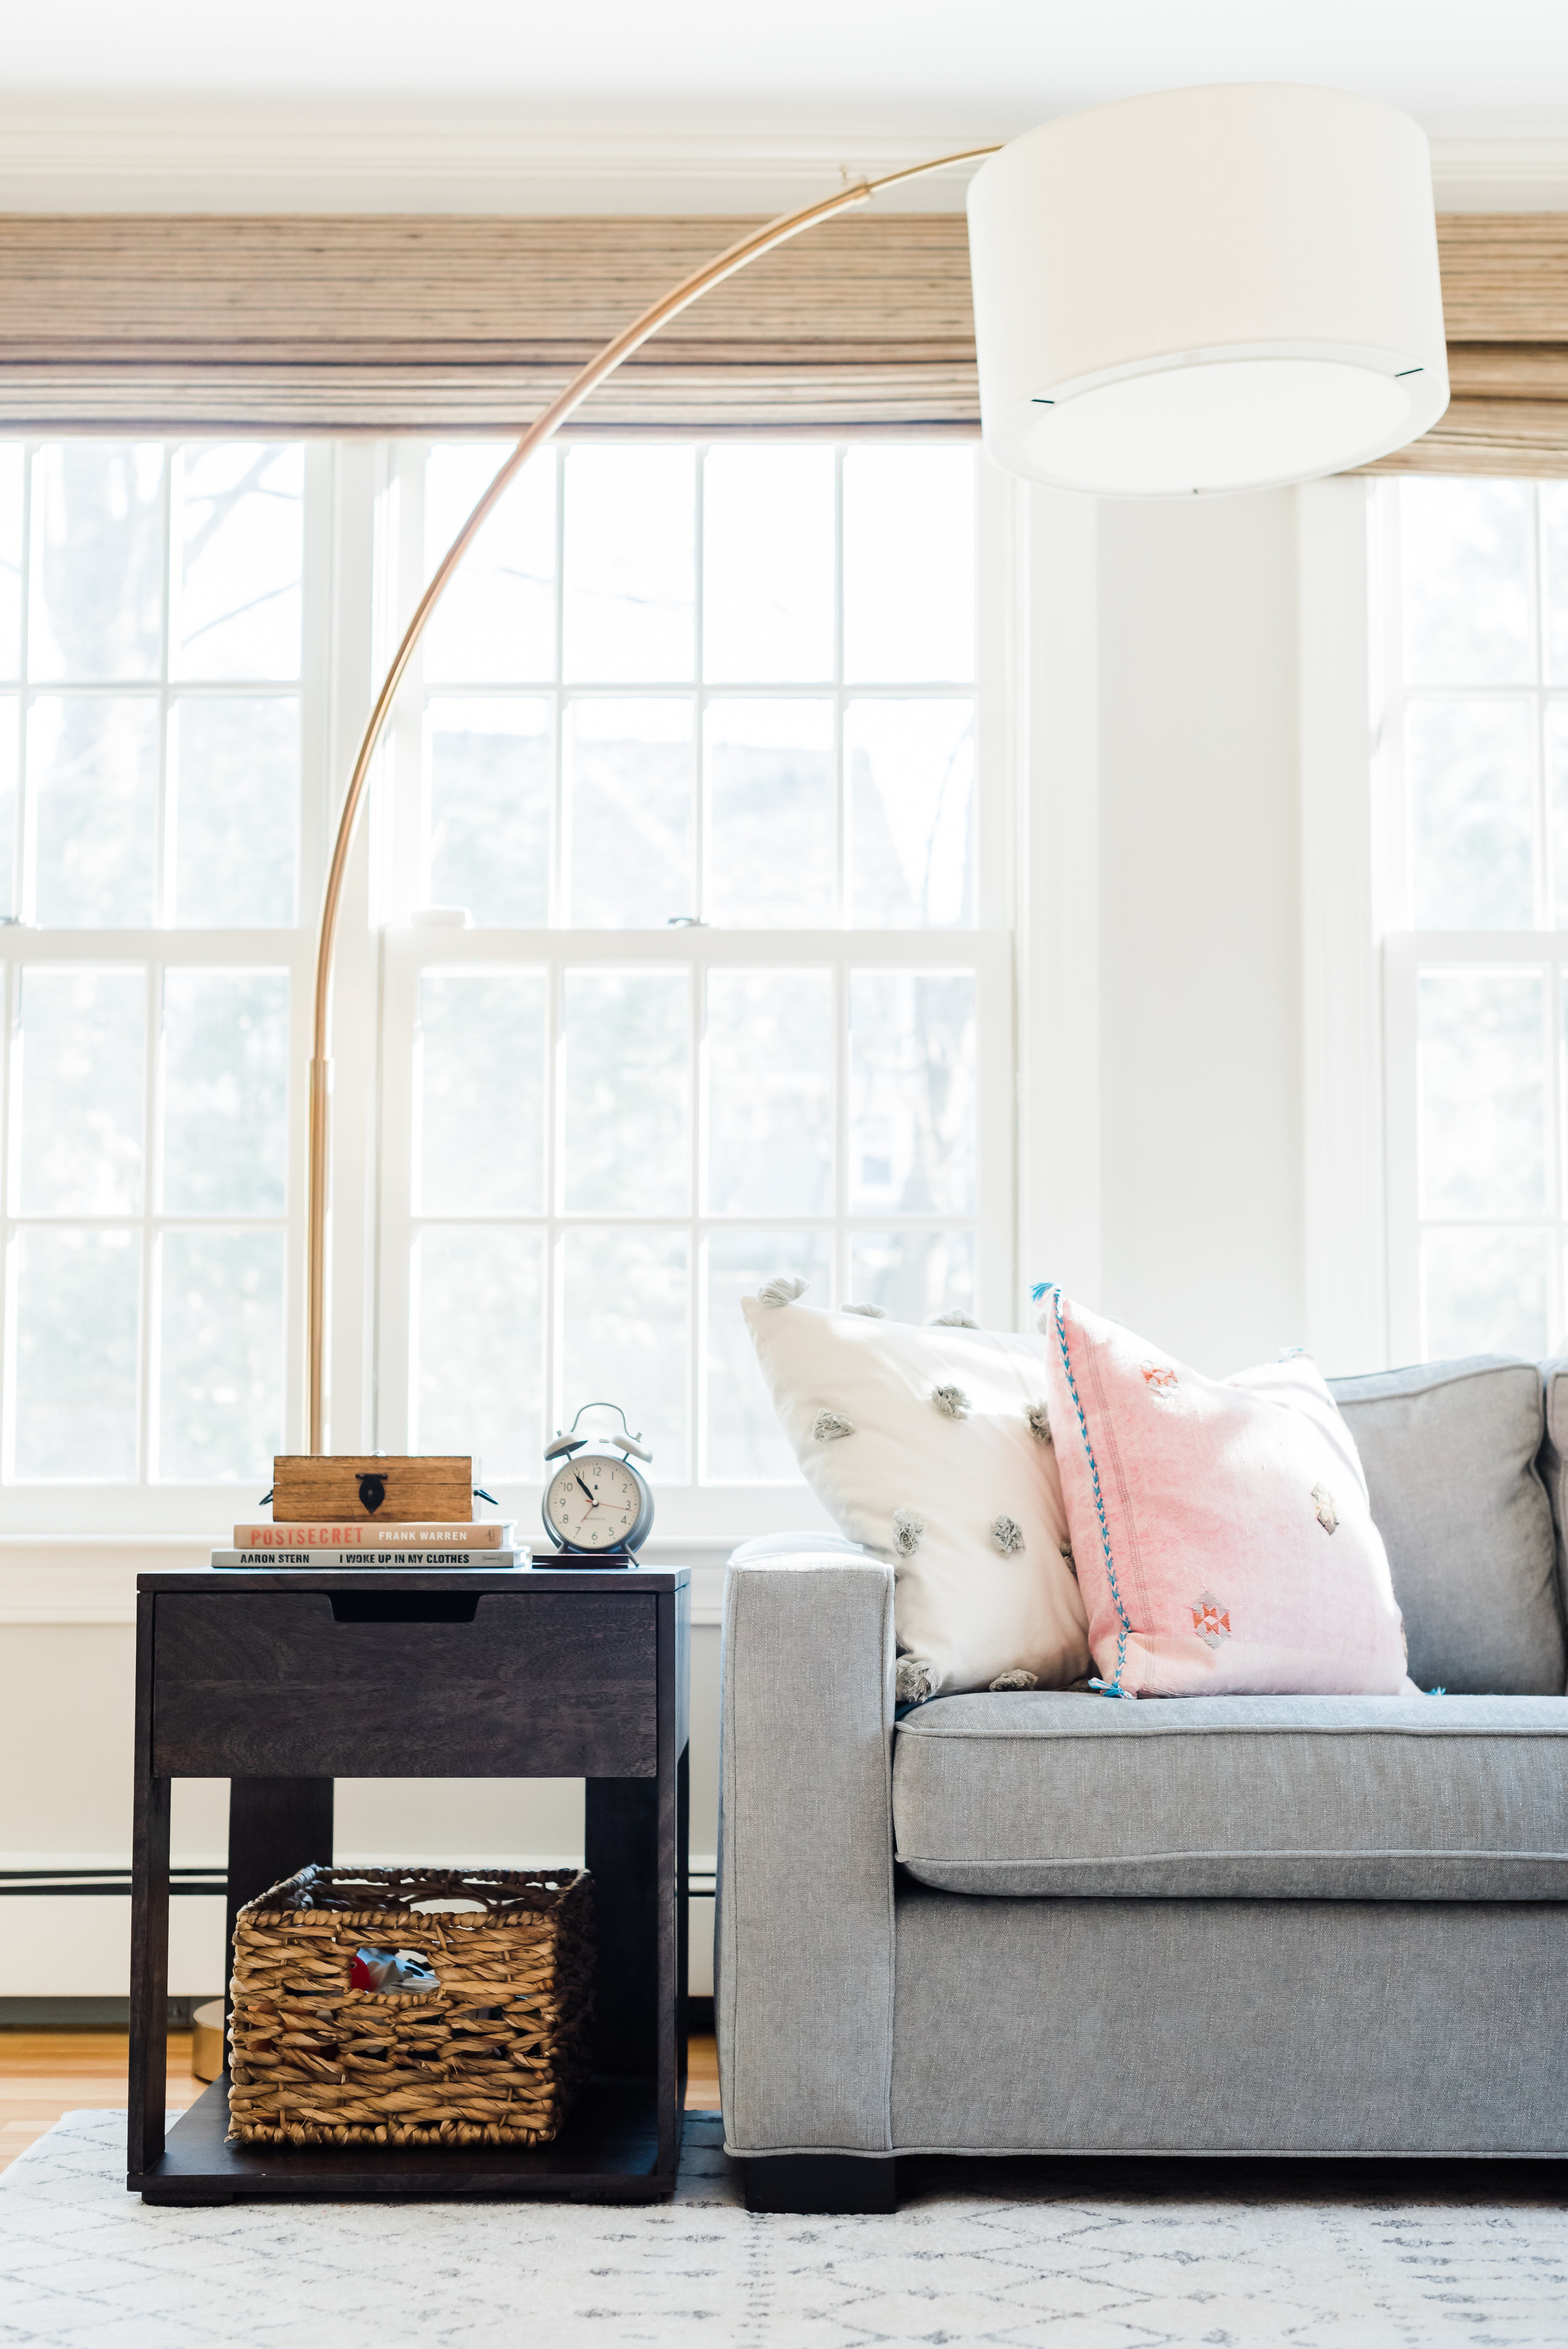 And cozy couches… - that make you want curl up and relax.